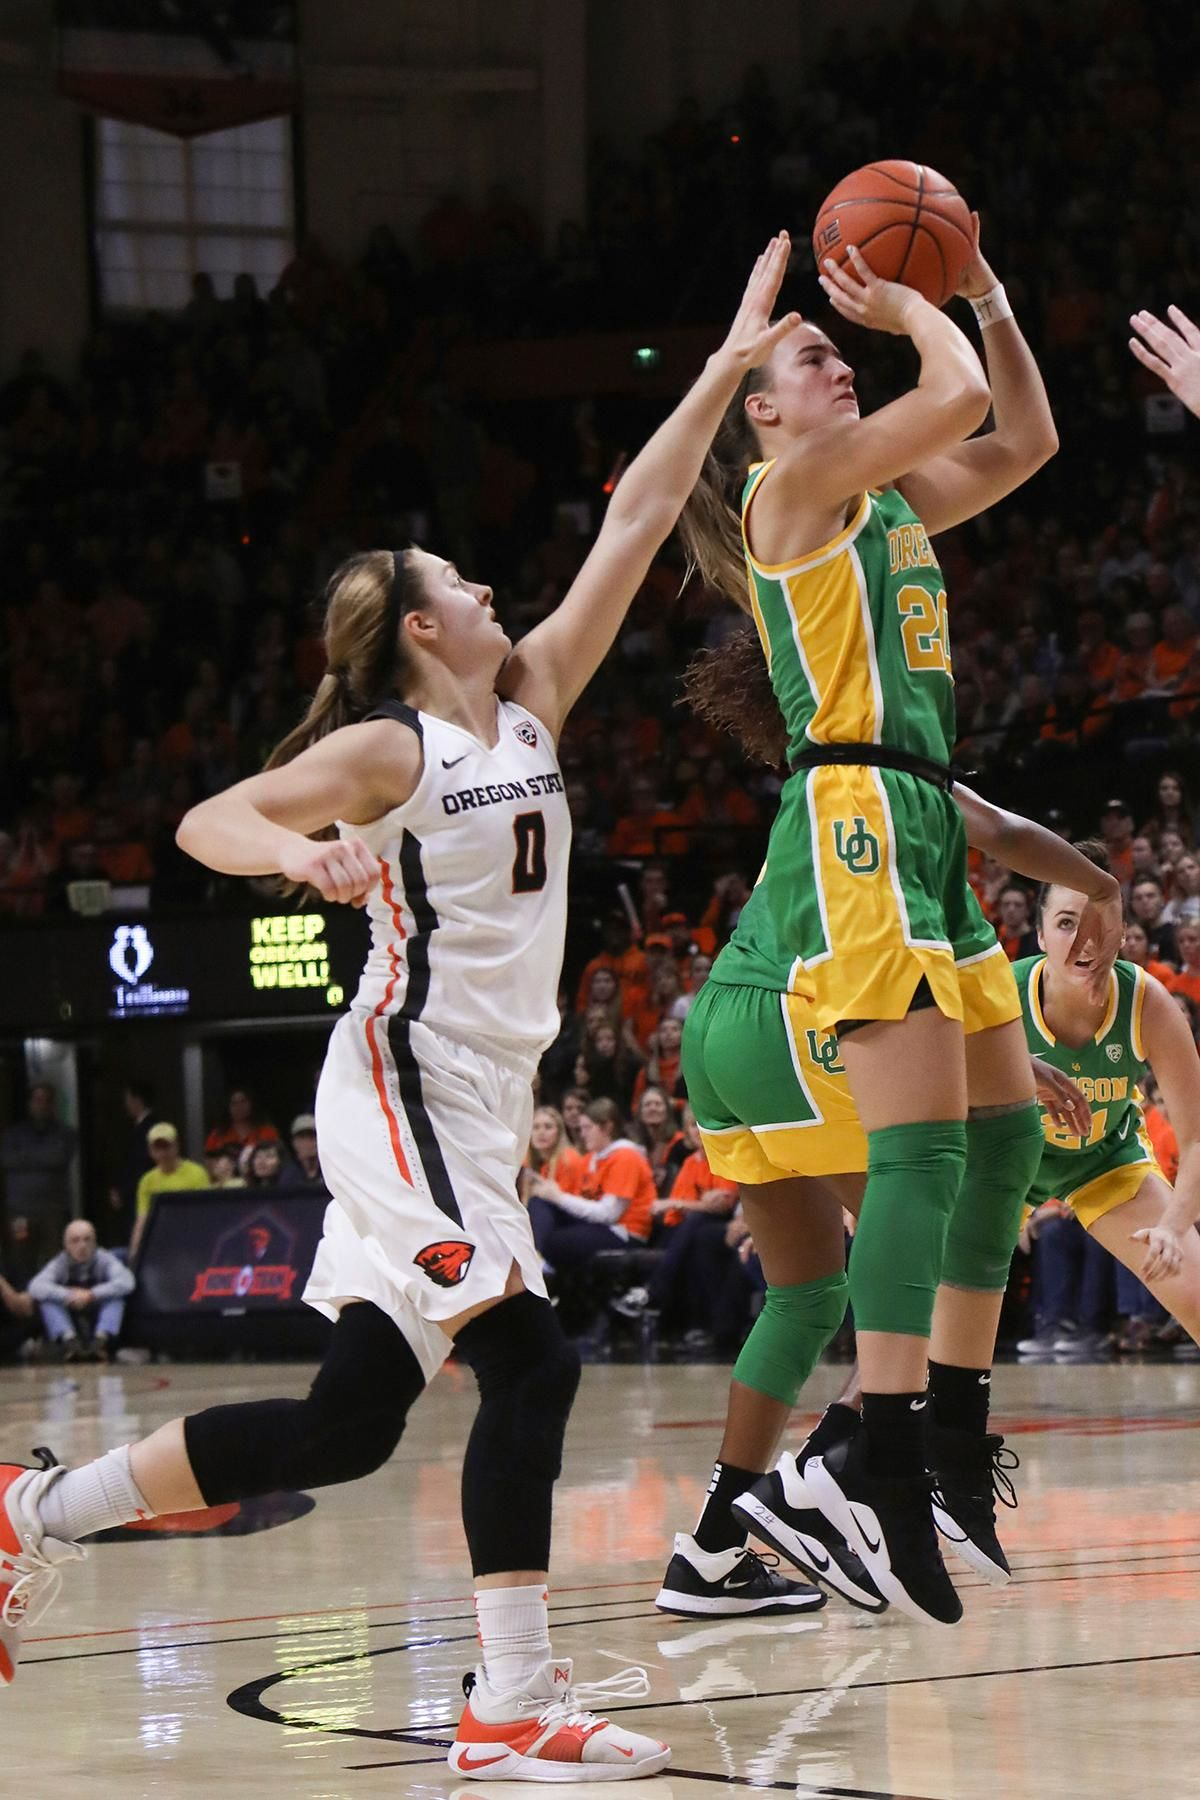 Oregon's Sabrina Ionescu (20) shoots despite defense from Oregon State's Mikayla Pivec (0) during the first half of an NCAA college basketball game in Corvallis, Ore., Sunday, Jan. 26, 2020. (AP Photo/Amanda Loman)